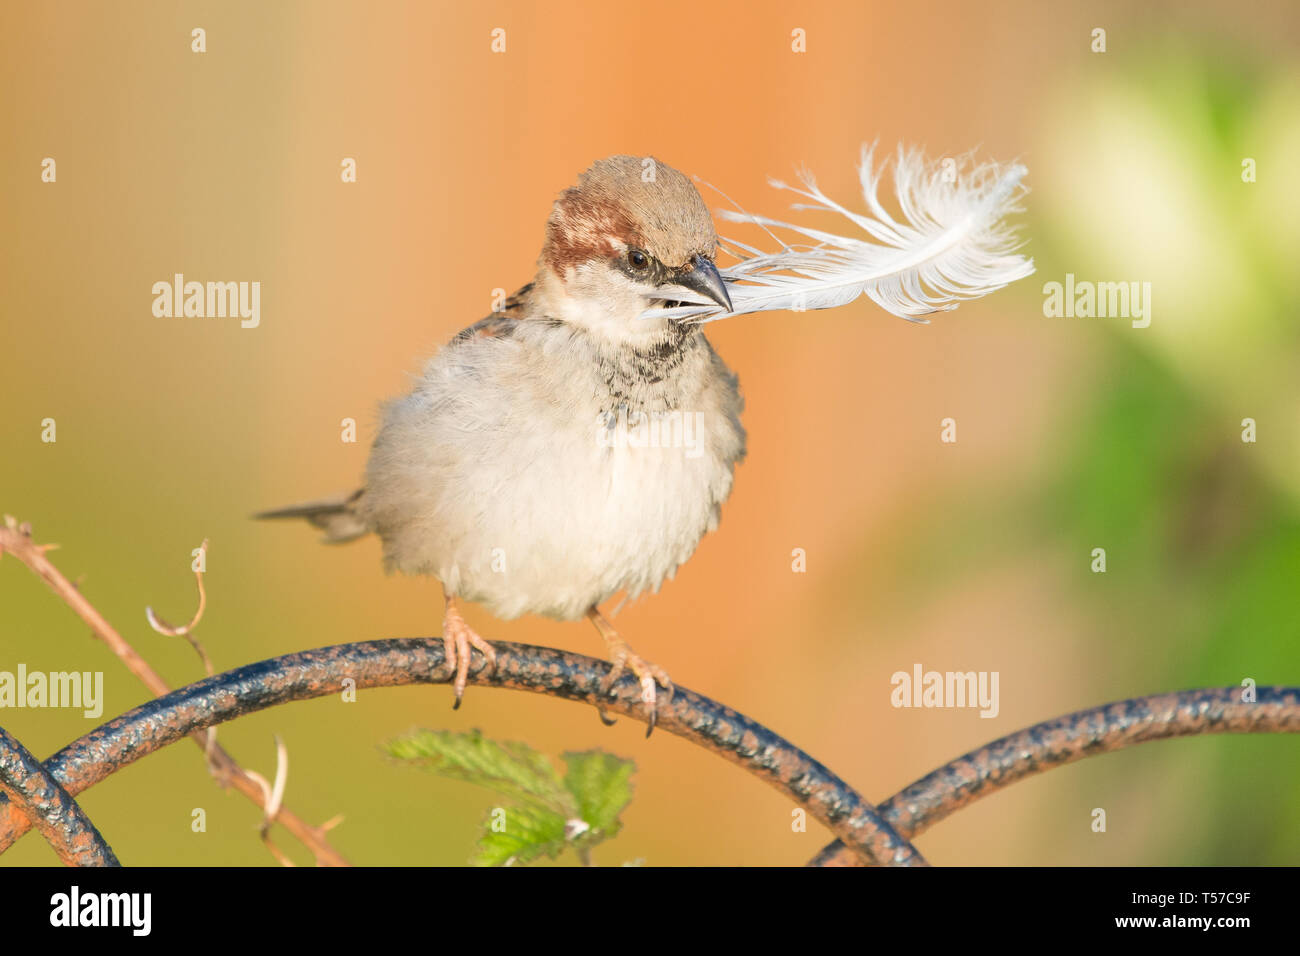 Luss, Loch Lomond, Scotland, UK. 22nd Apr, 2019. uk weather - a house sparrow busy collecting nesting materials on a glorious still and hazy morning at Luss, Loch Lomond Credit: Kay Roxby/Alamy Live News Stock Photo